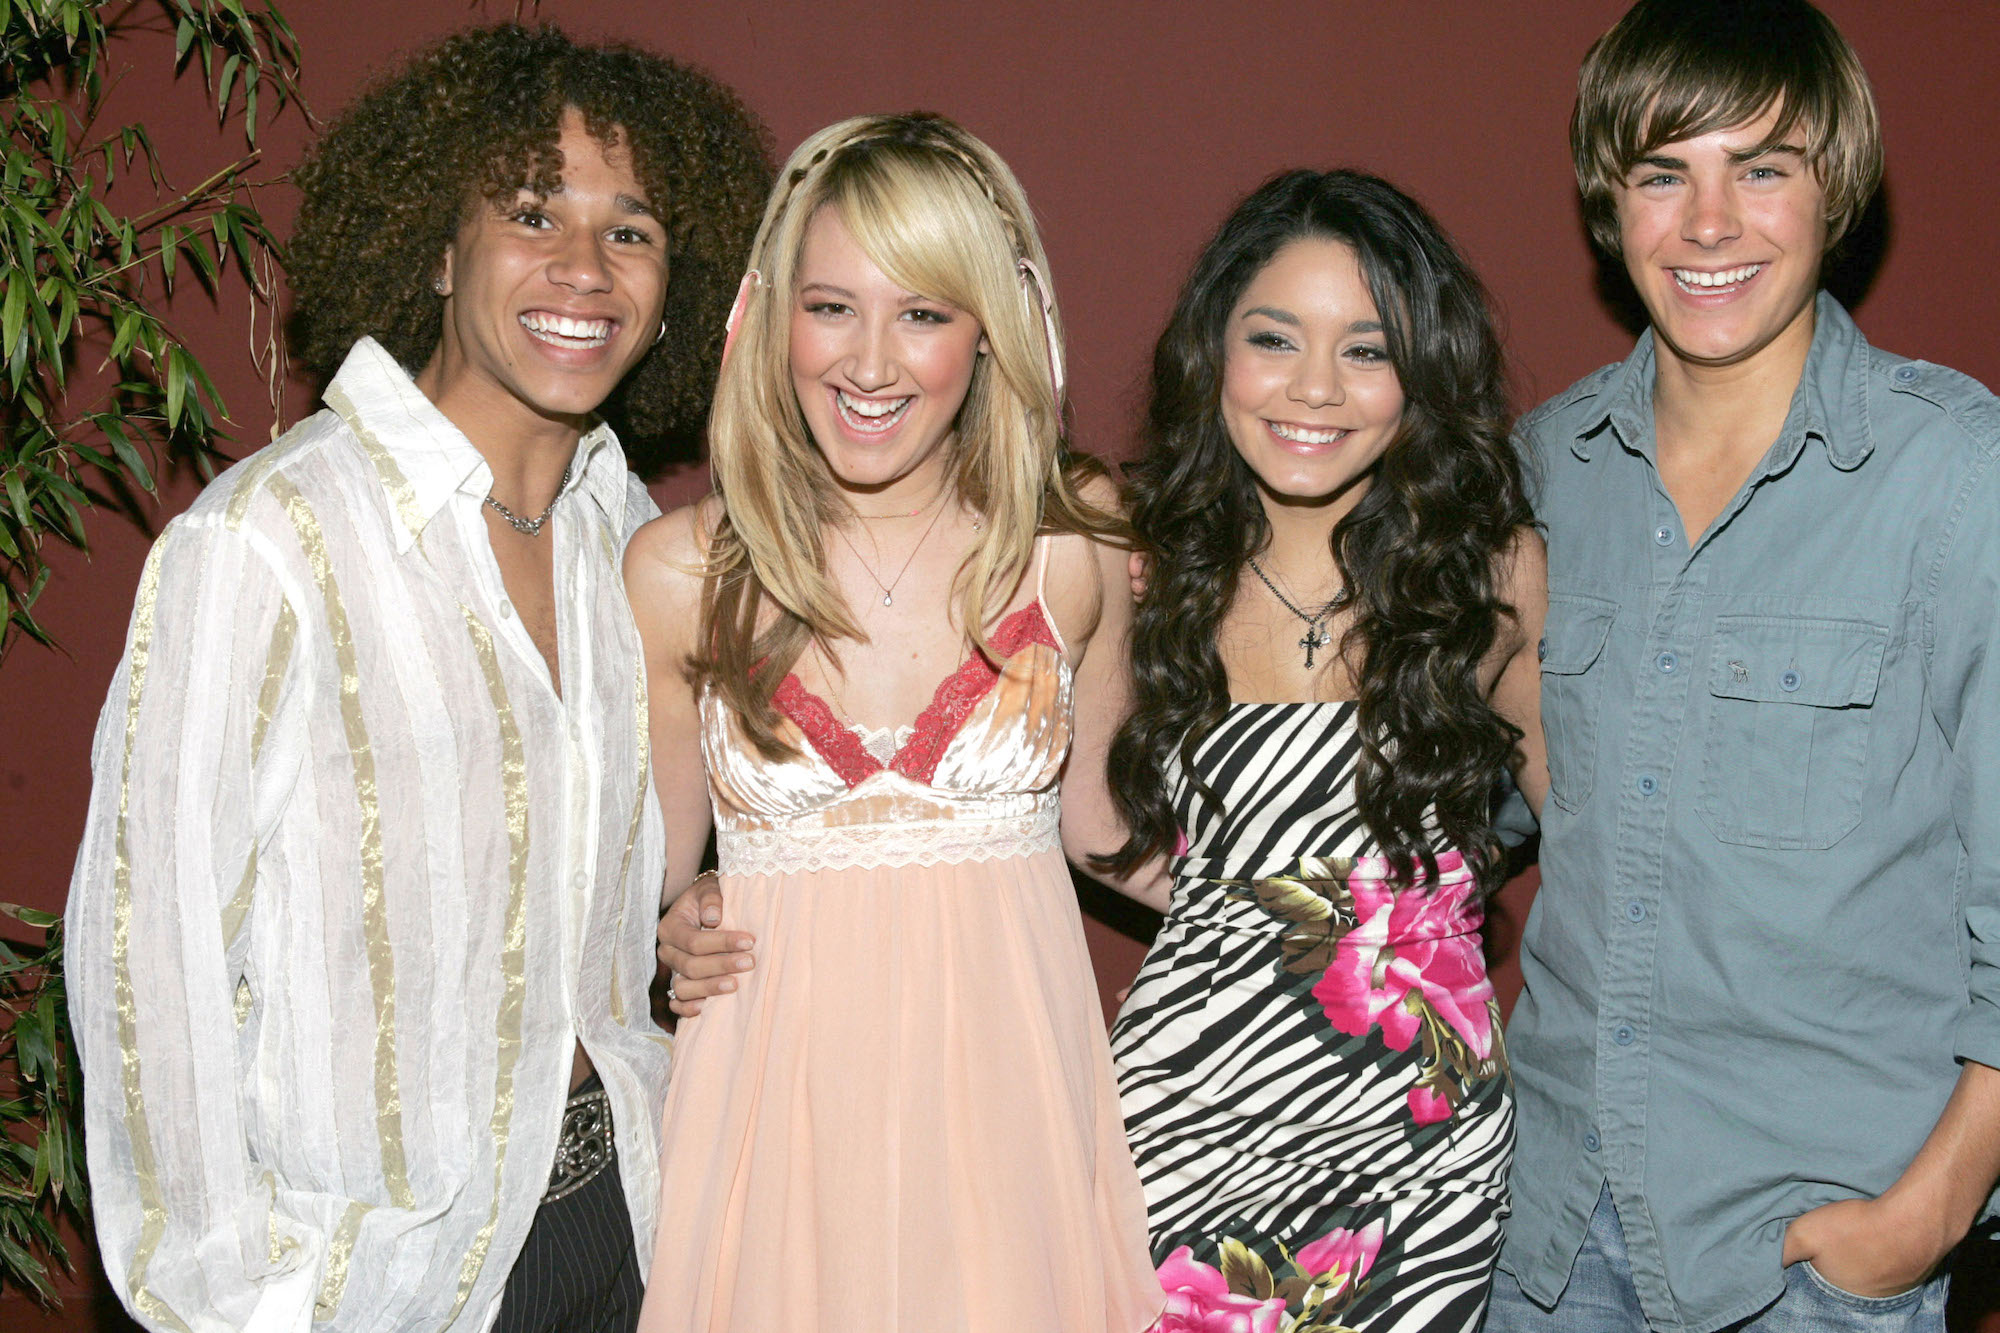 Corbin Bleu, Ashley Tisdale, Vanessa Hudgens and Zac Efron on October 09, 2005.